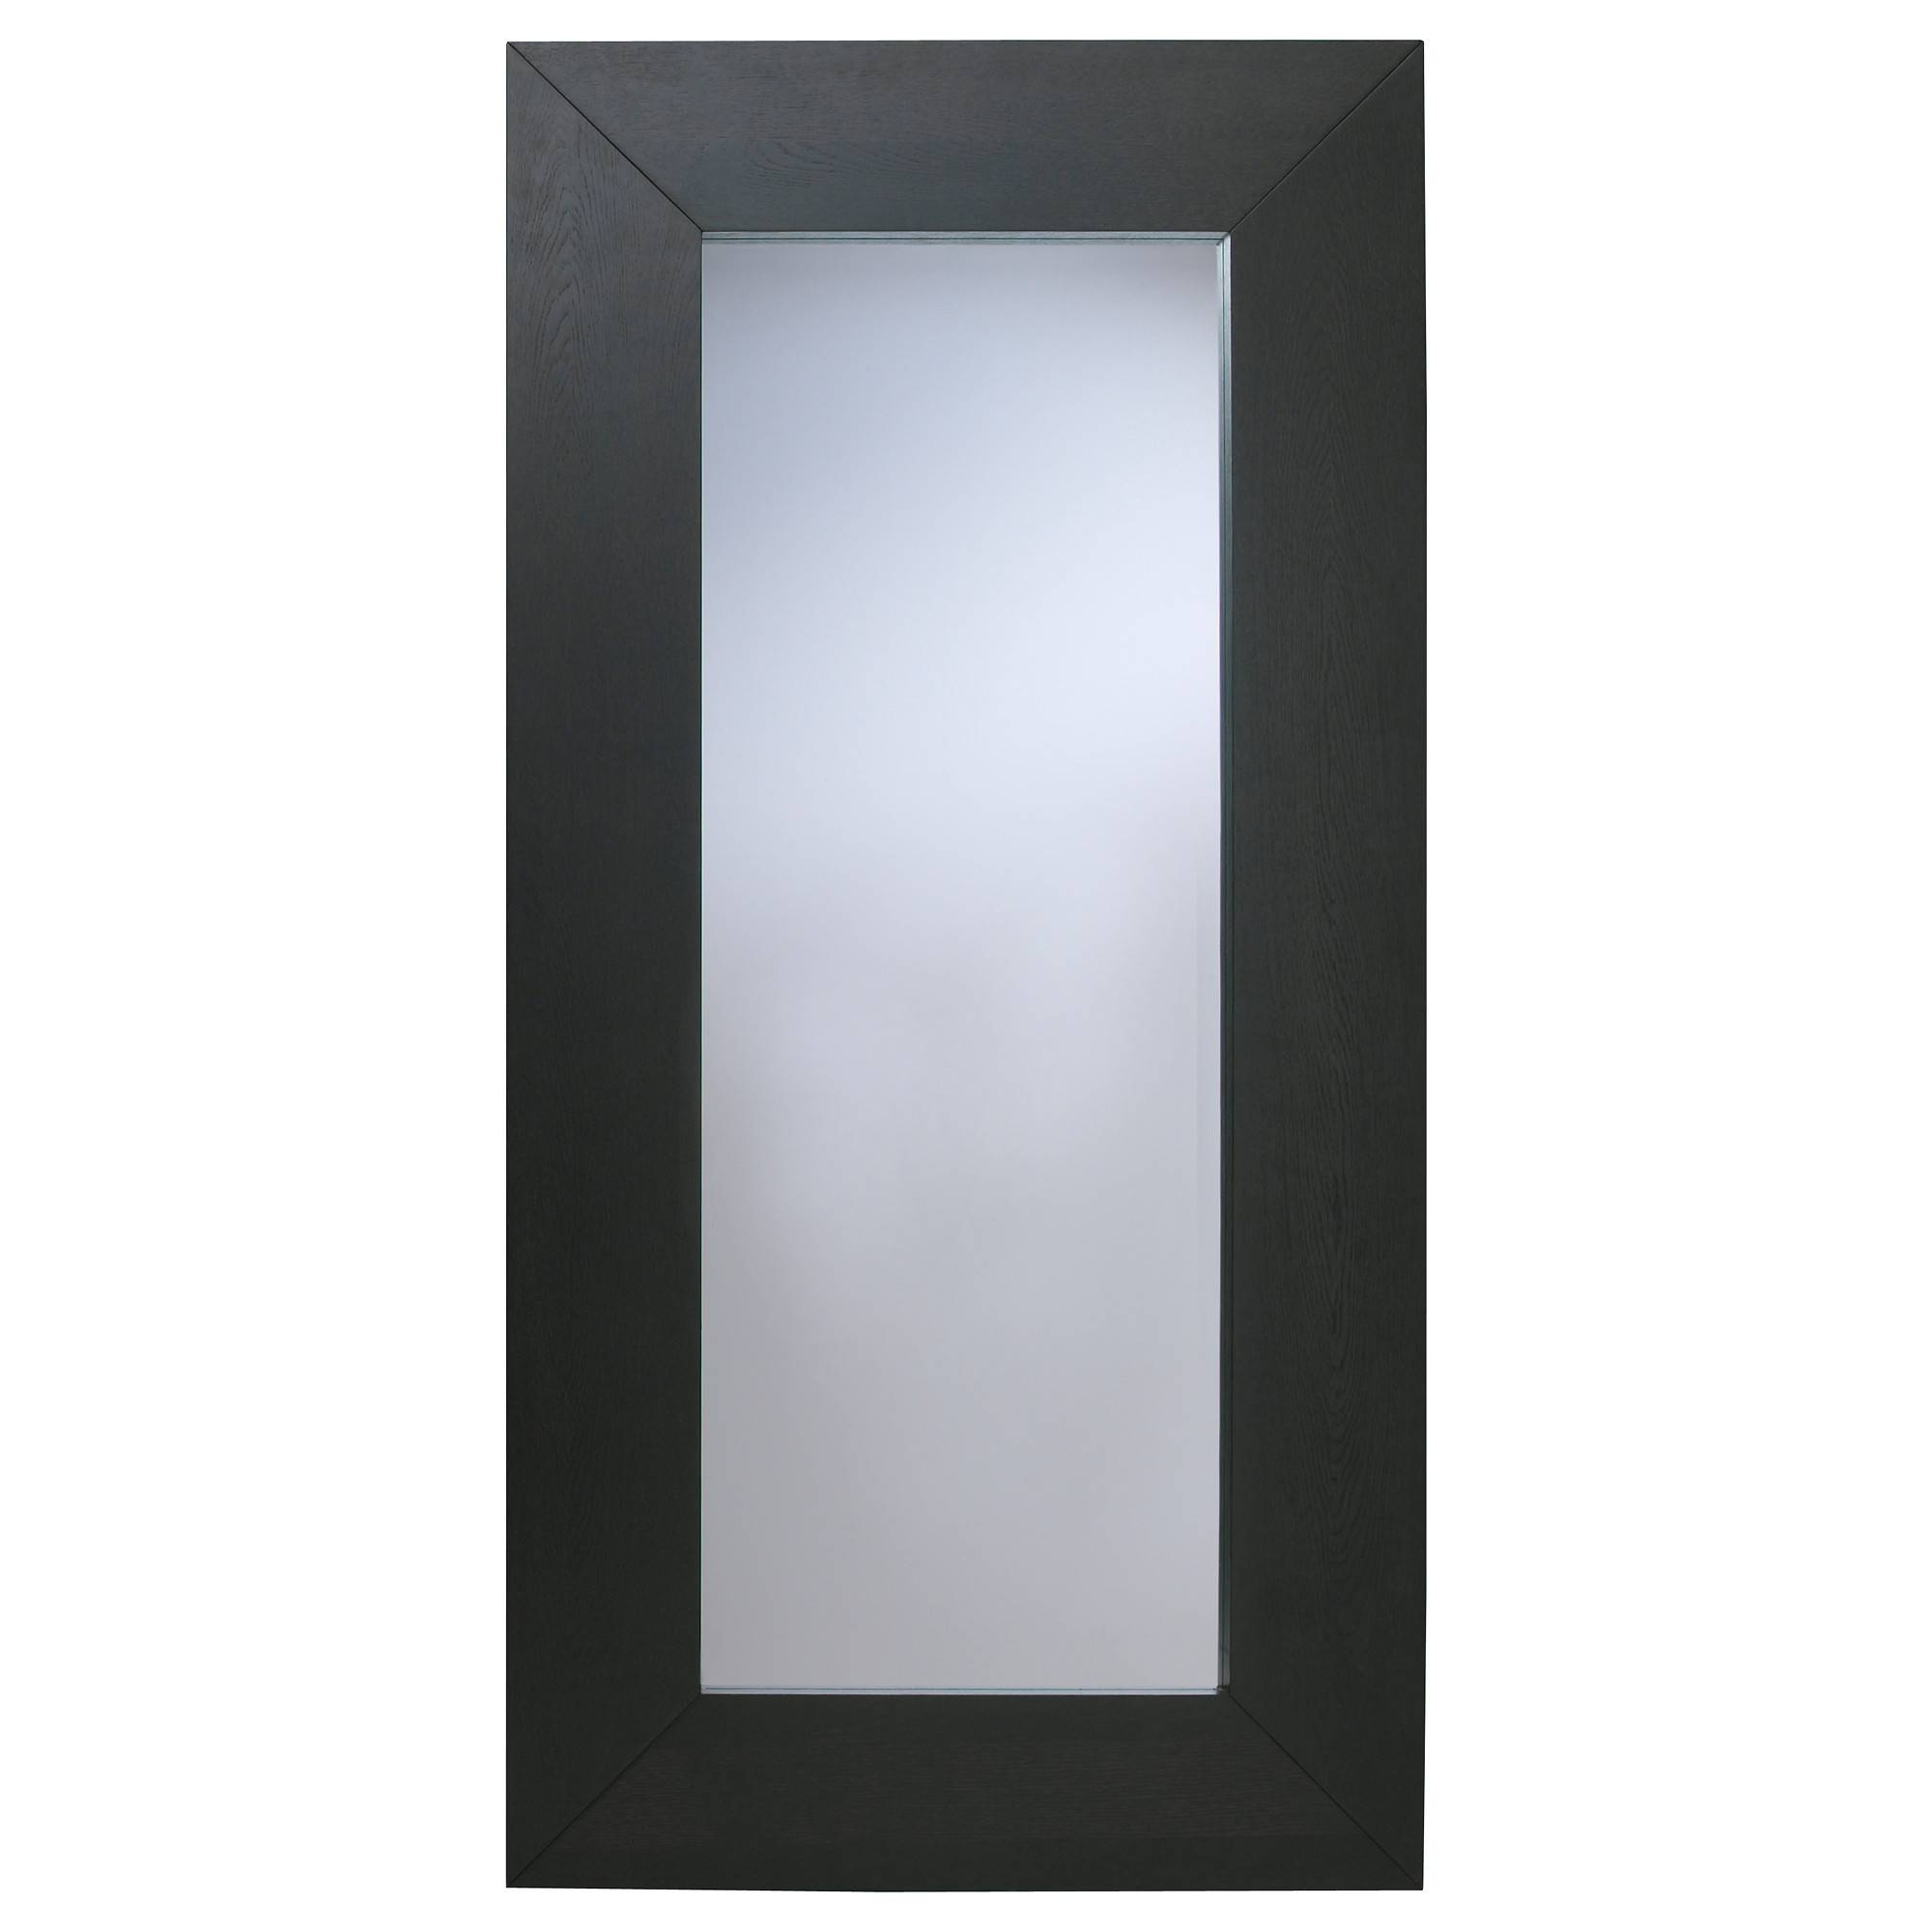 Mongstad Mirror Black Brown 94x190 Cm – Ikea With Regard To Mirrors (View 4 of 15)